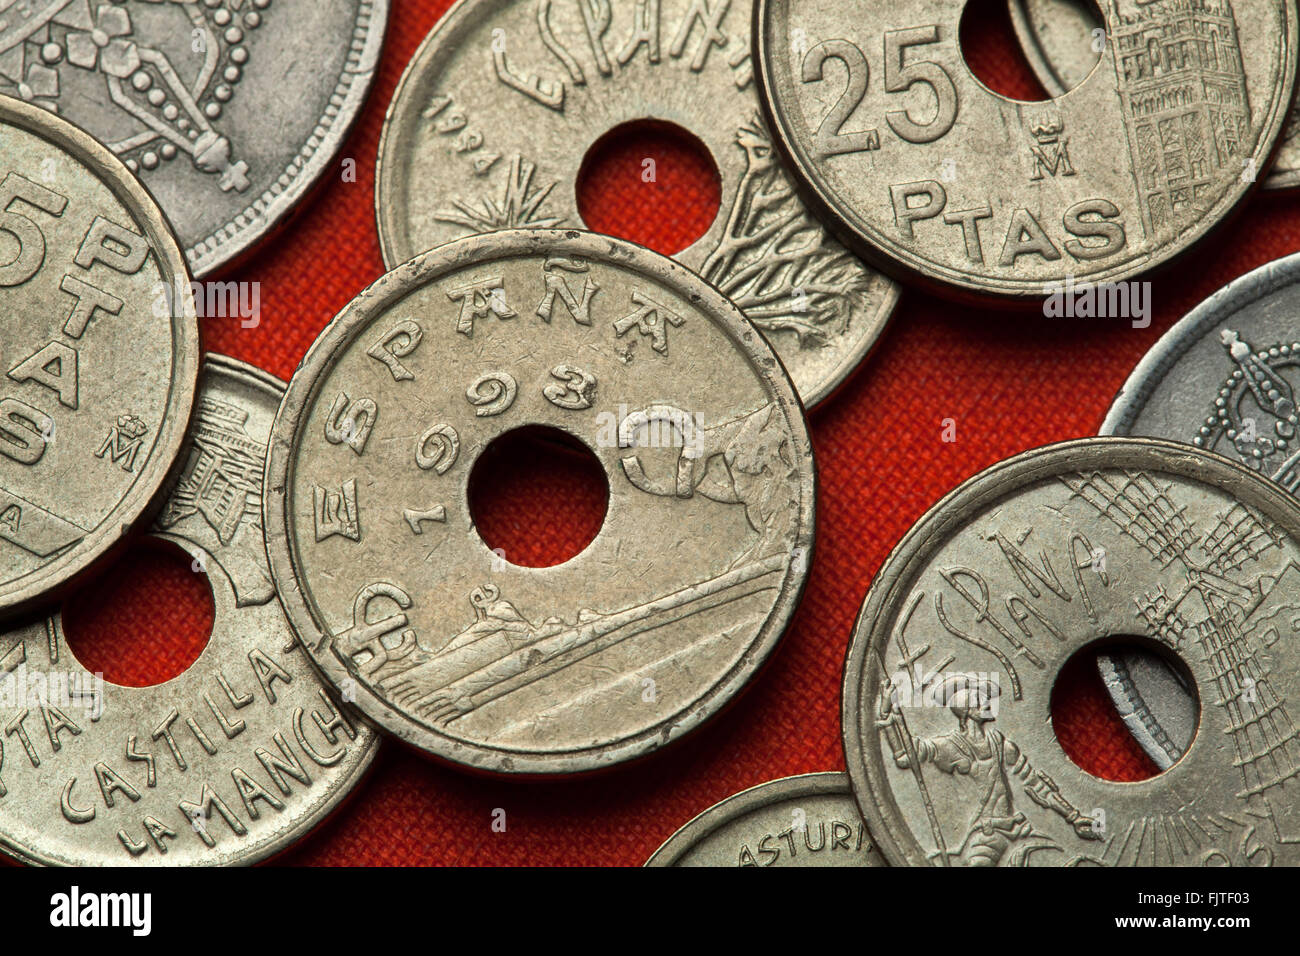 Coins of Spain. Statues by Eduardo Chillida in San Sebastian, Basque Country depicted in the Spanish 25 peseta coin - Stock Image